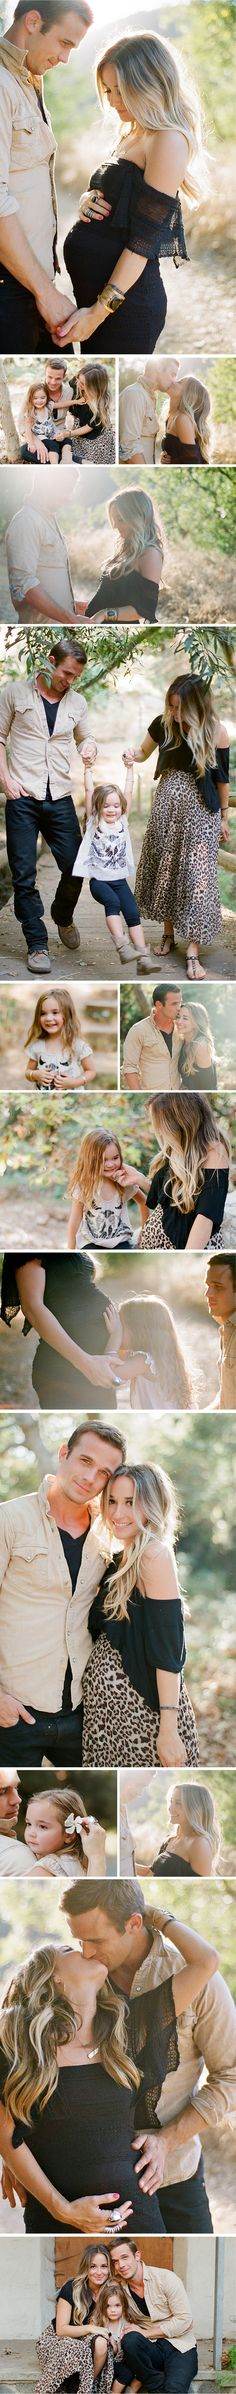 Best Wedding Pictures Poses With Children Babies Photography Ideas Beste Hochzeitsbilder Posen Mit Kindern Babys Fotografie Ideen Maternity Poses, Maternity Portraits, Maternity Pictures, Pregnancy Photos, Maternity Photography, Photography Poses, Family Photography, Babies Photography, Shooting Photo